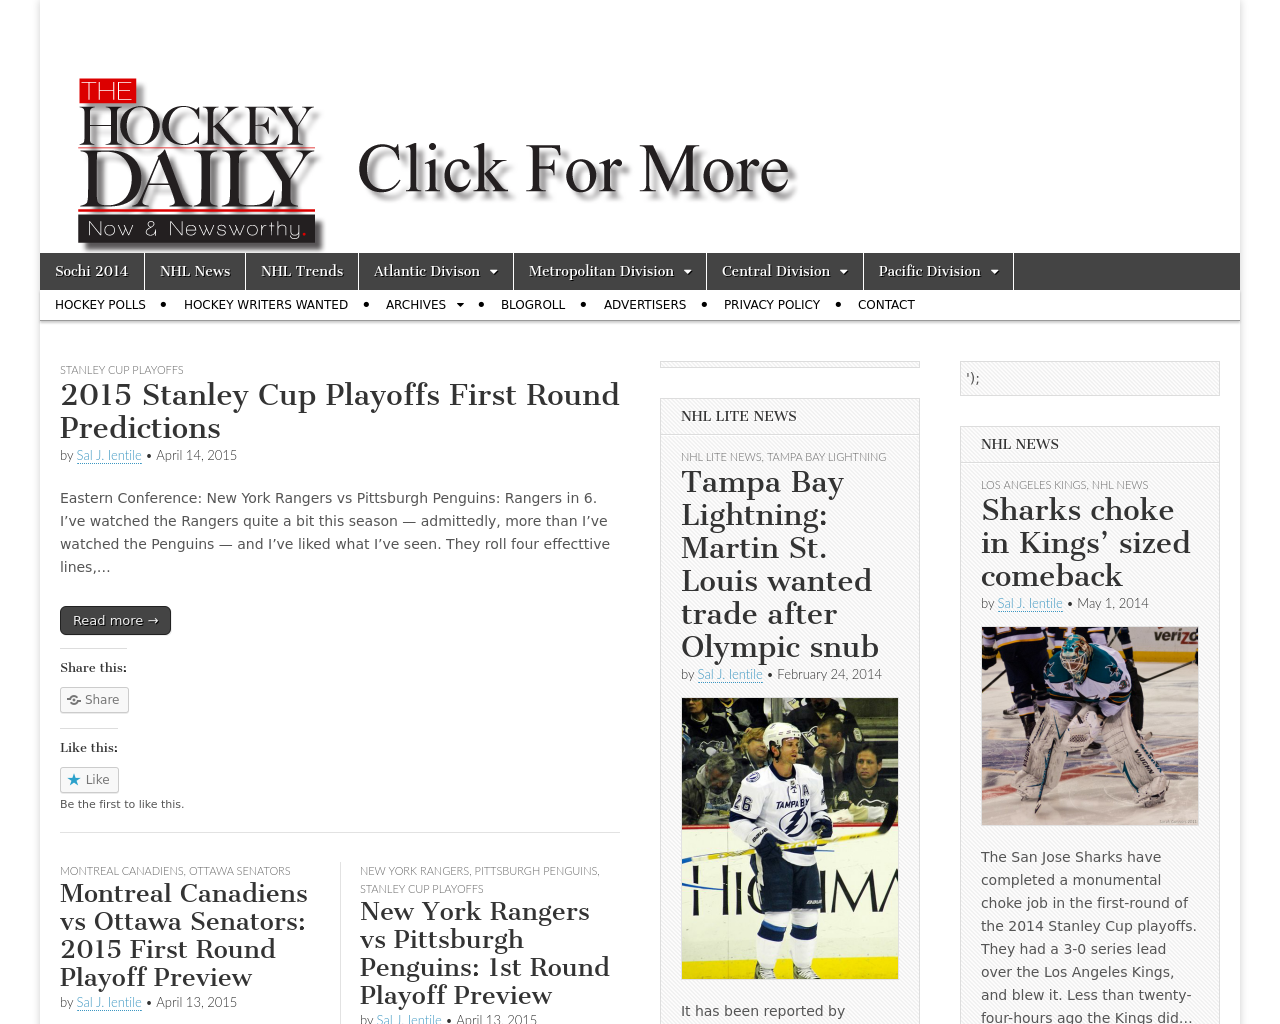 The-Hockey-Daily-Advertising-Reviews-Pricing